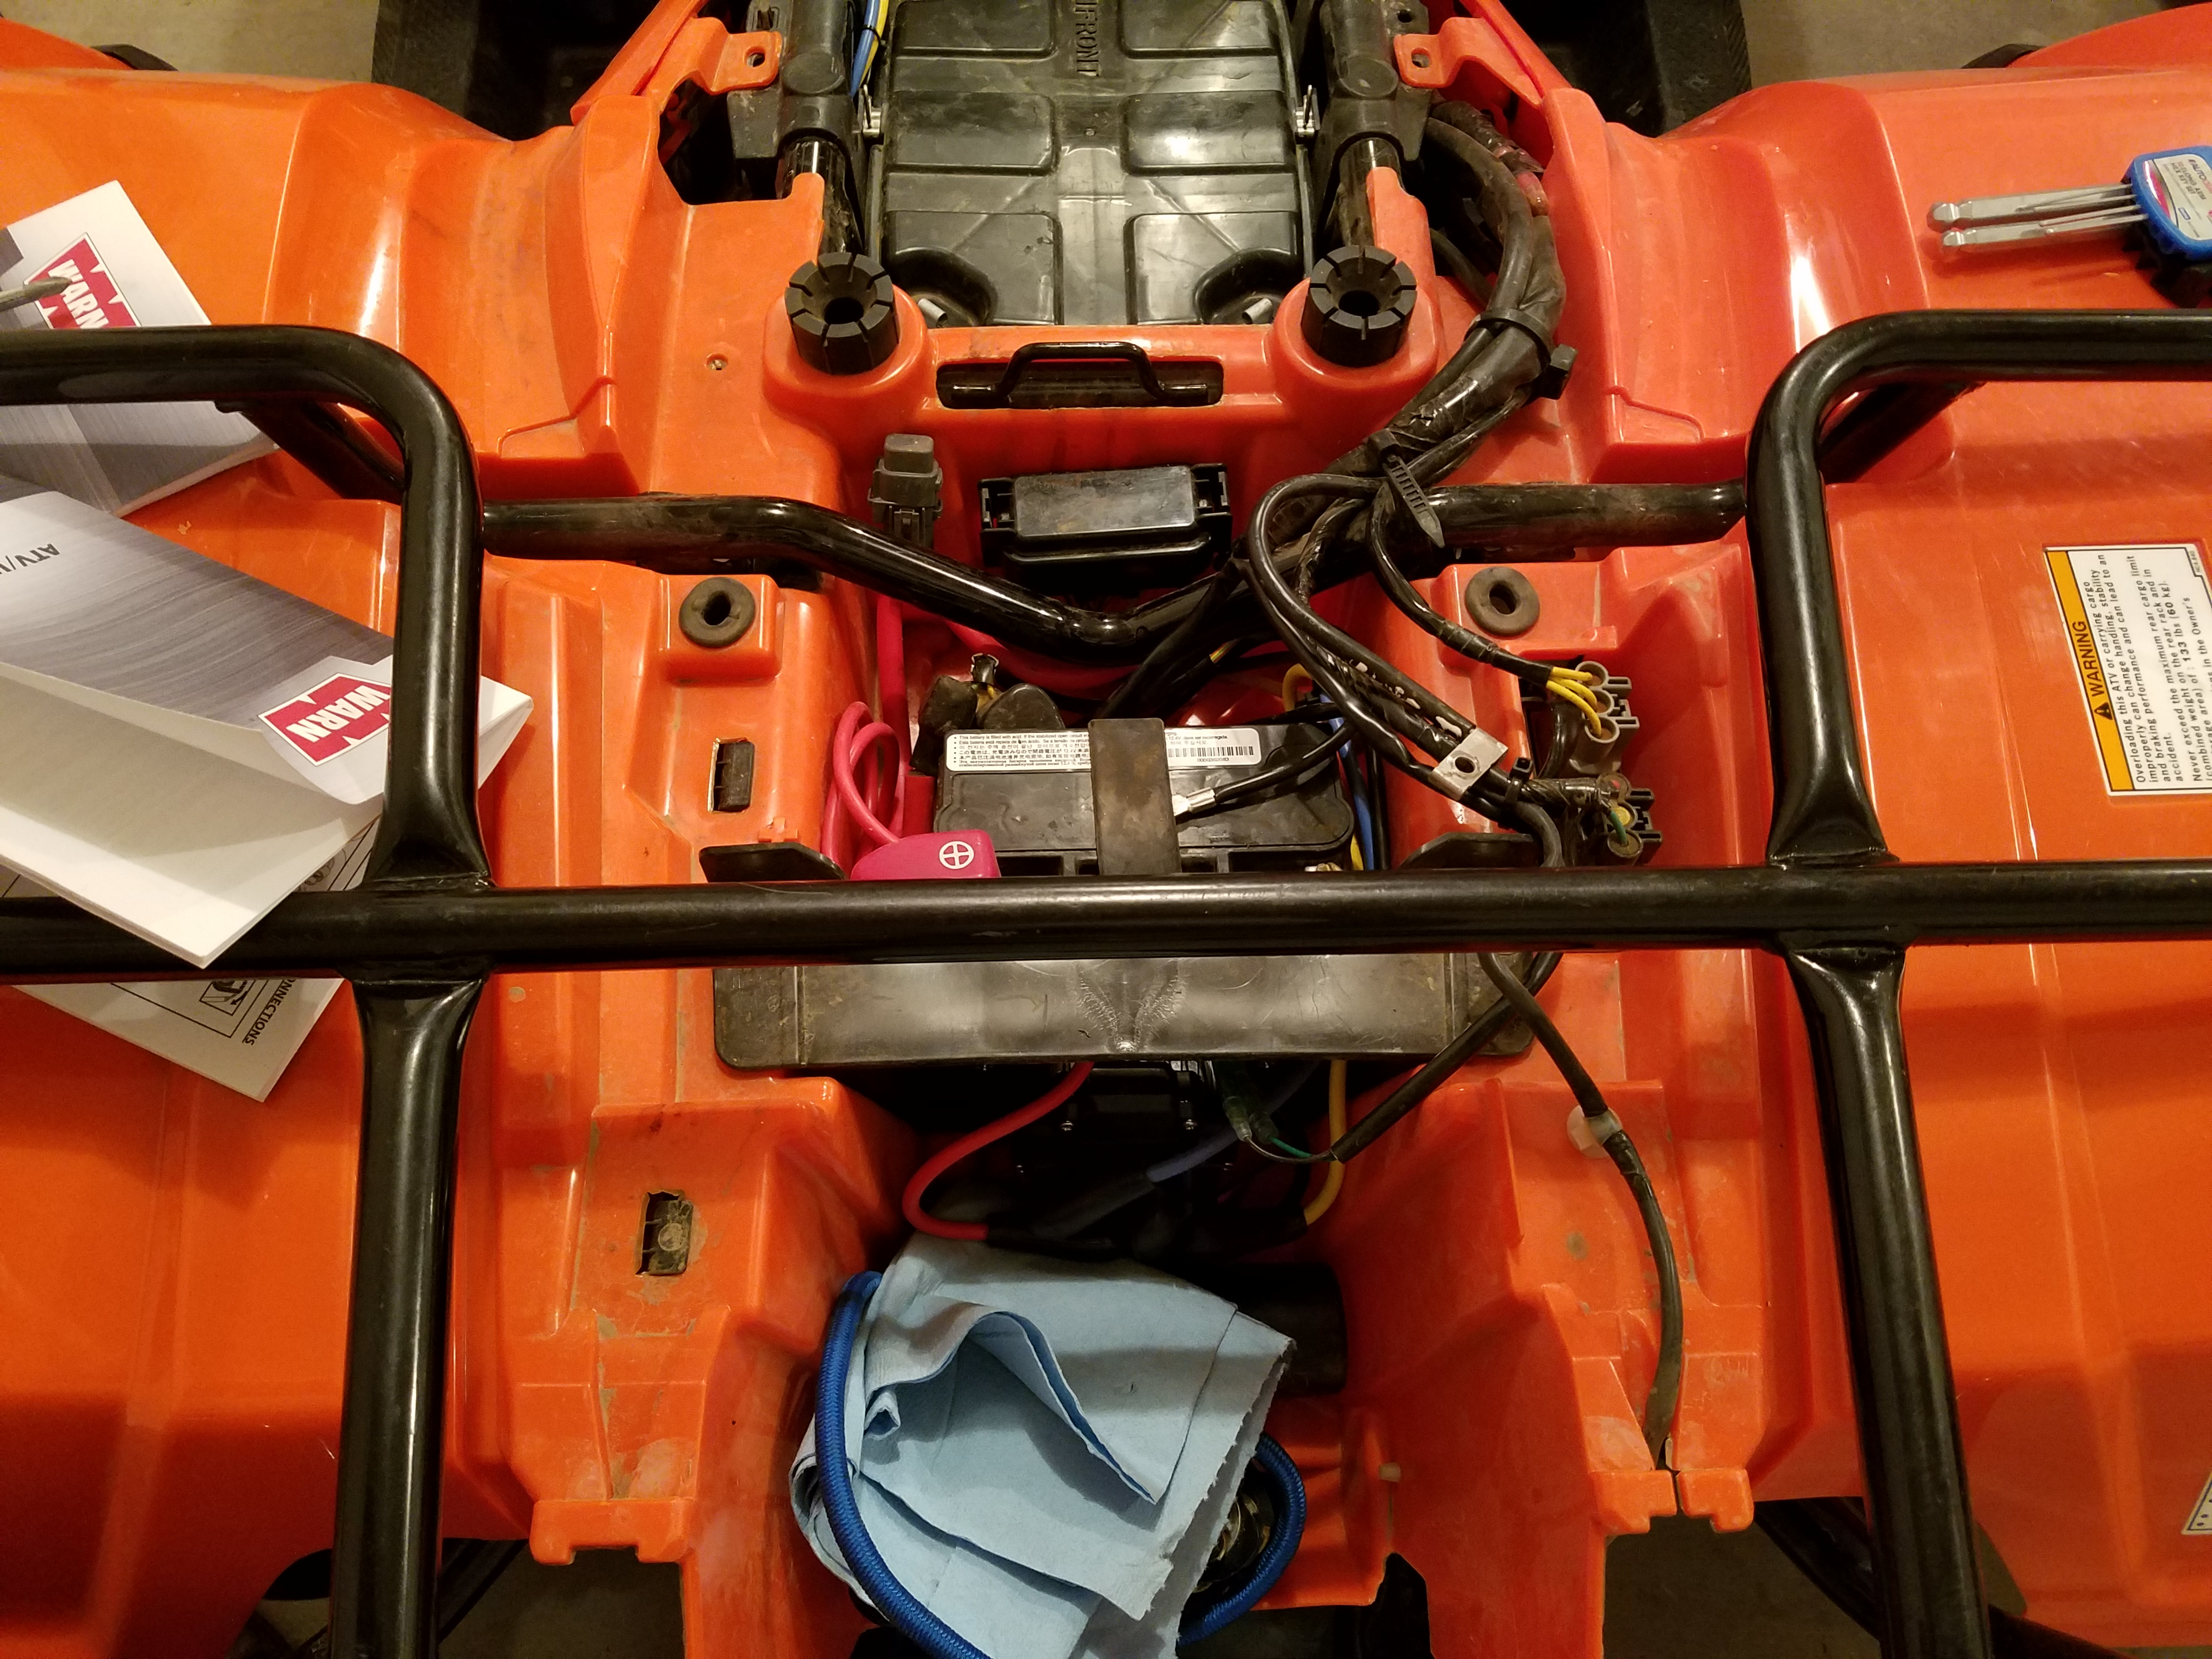 2015 Rancher Warm Winch And Snow Plow Install